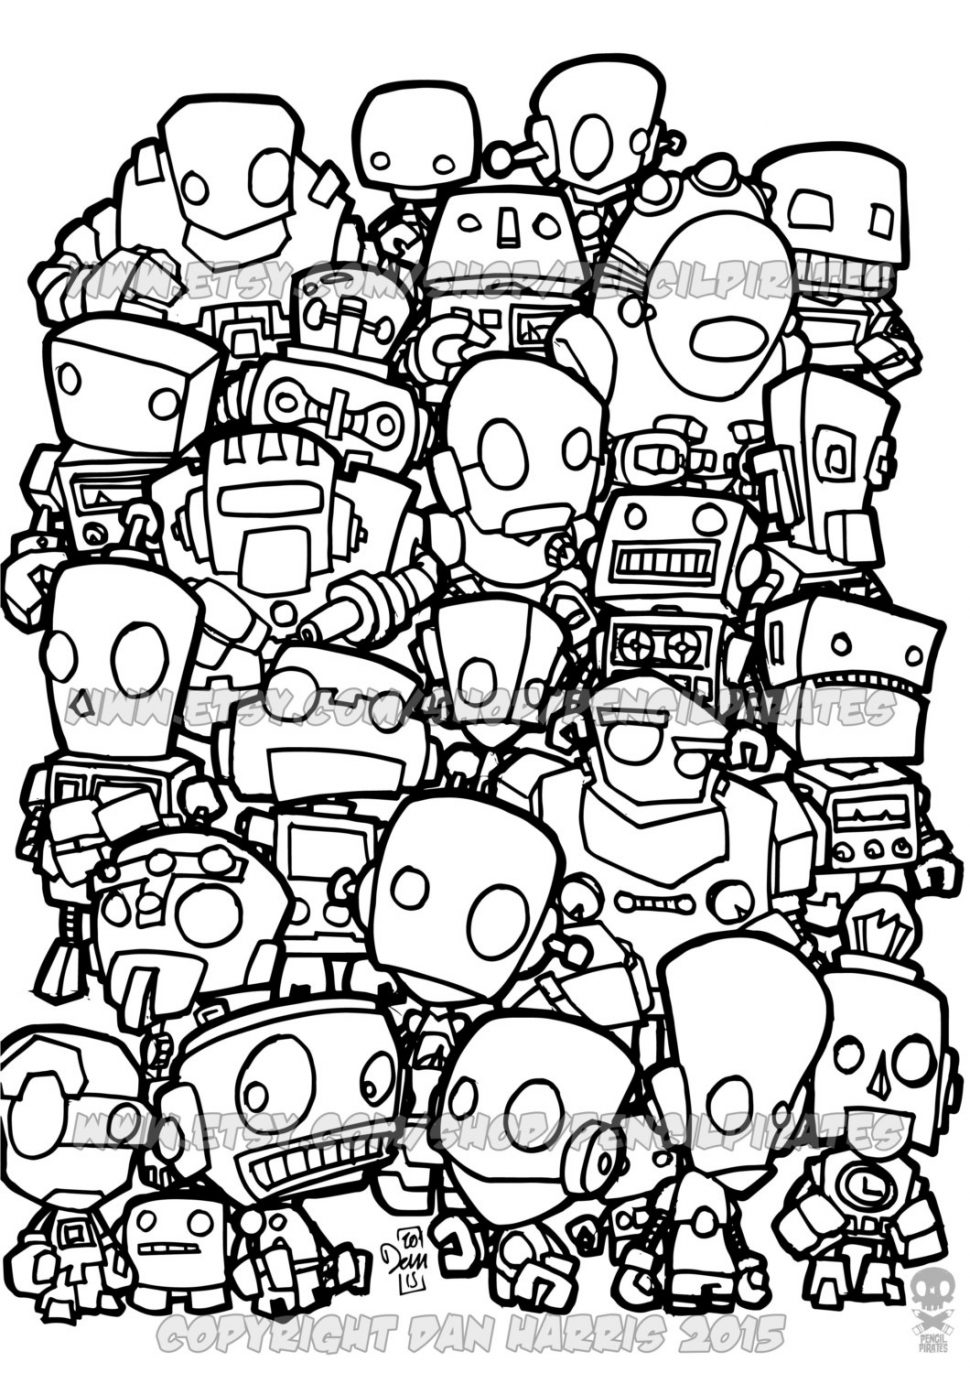 970x1373 Coloring Robot Coloring Book Il Fullxfull 774324462 9y2t